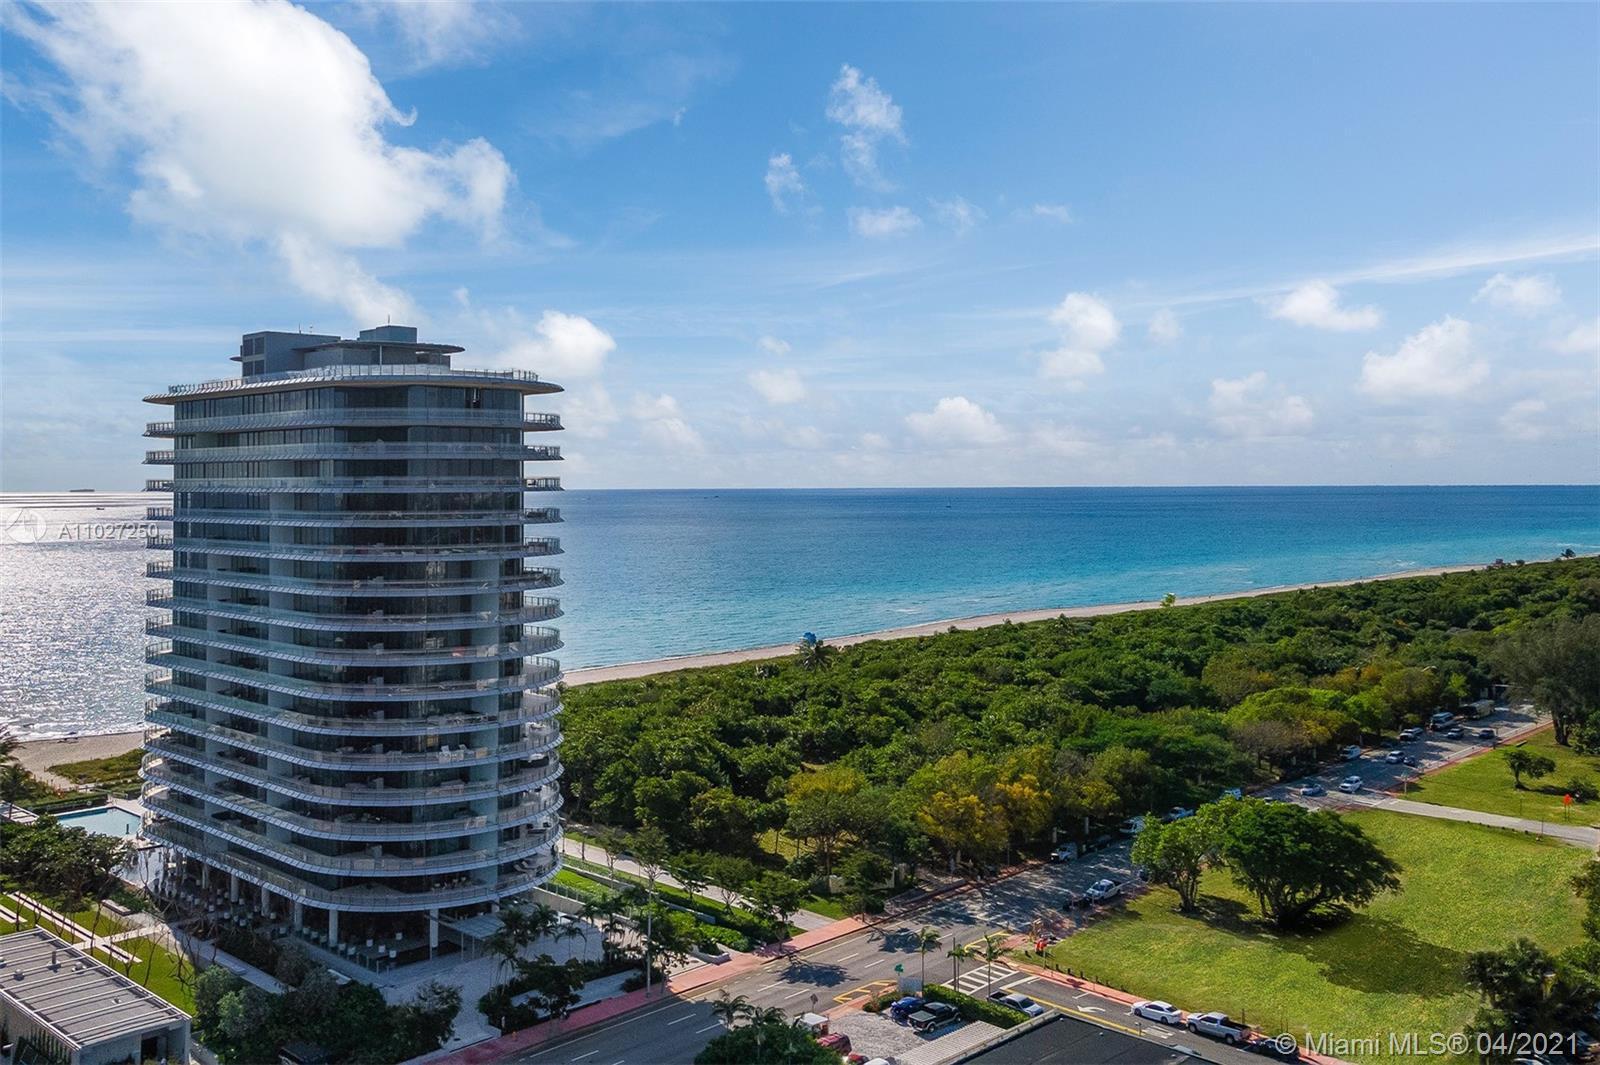 This stunning oceanfront condo—available furnished by TAL Studios—represents the pinnacle of indoor/outdoor living for the modern era, encompassing 3,162 SF+/- of interior living space, 4 bedrooms, 3 full and 1 half bathrooms, fresh modern interiors, and an astounding 2,280 SF+/- of oceanfront terrace that promises breathtaking ocean, bay, park, and city views from every vantage point.